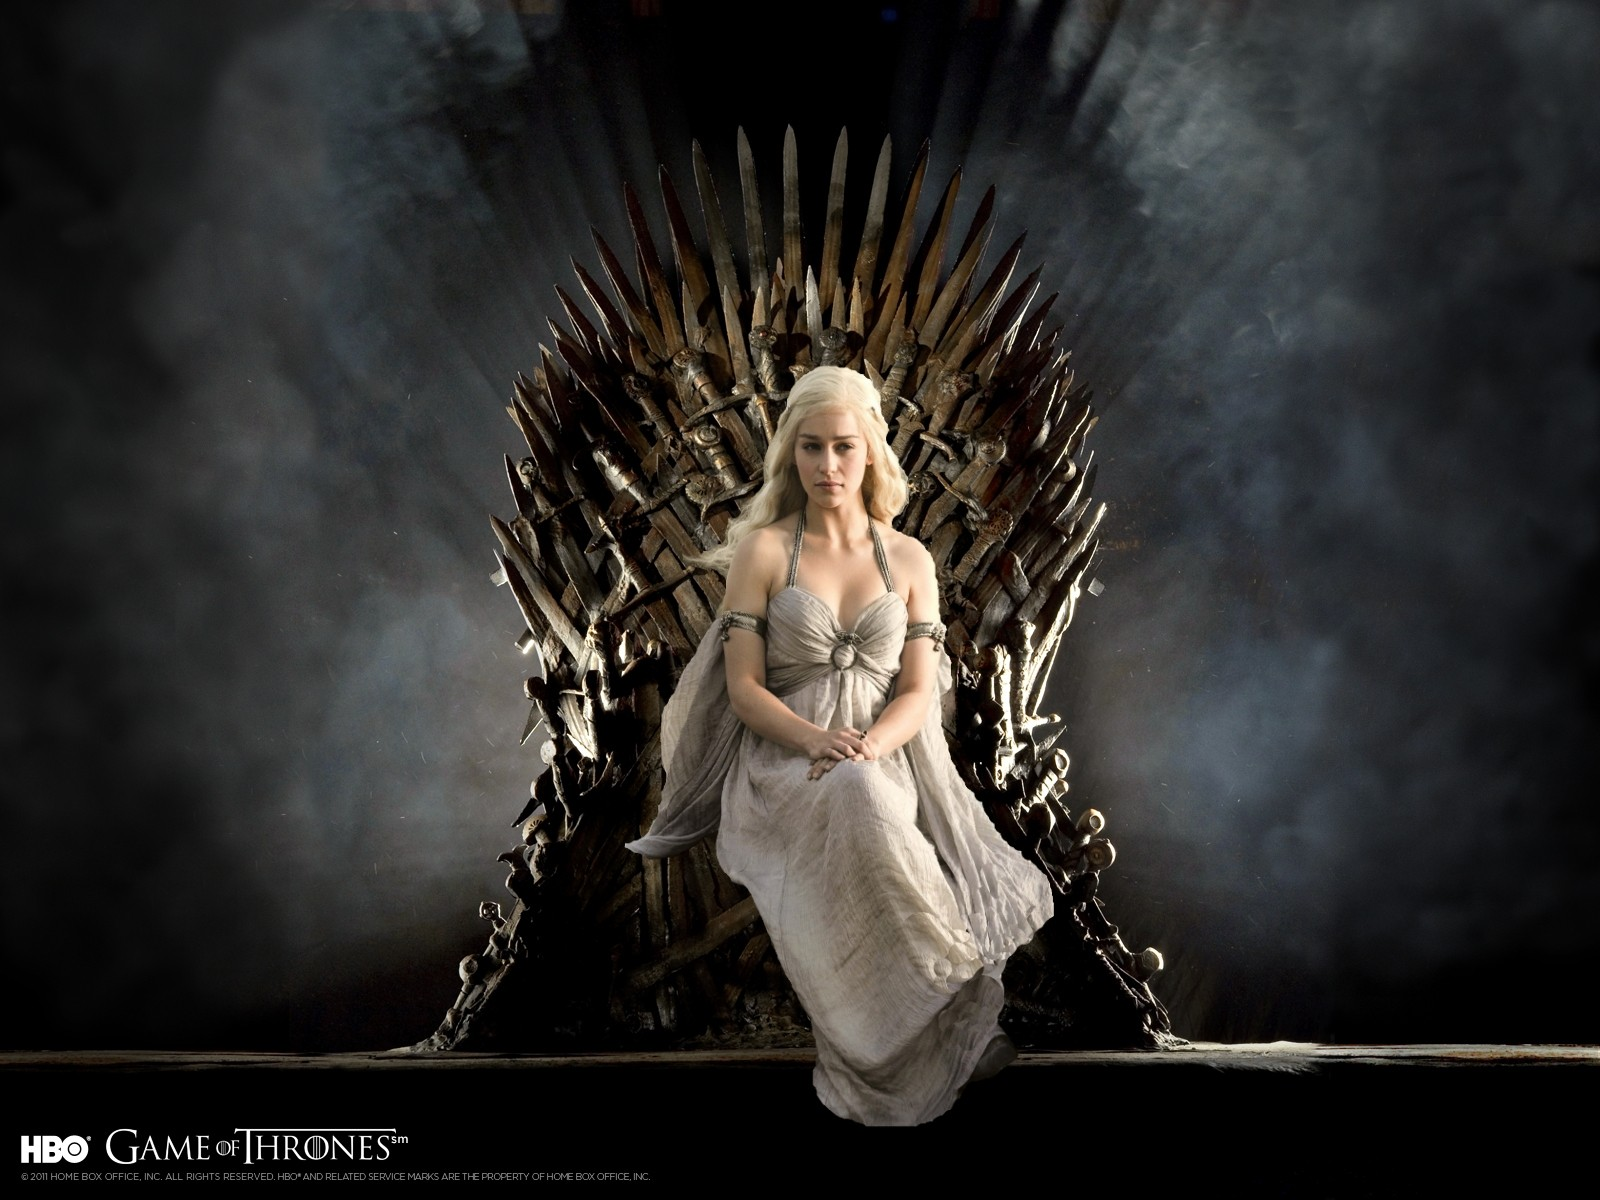 Daenerys Targaryen on Iron Throne Game of Thrones